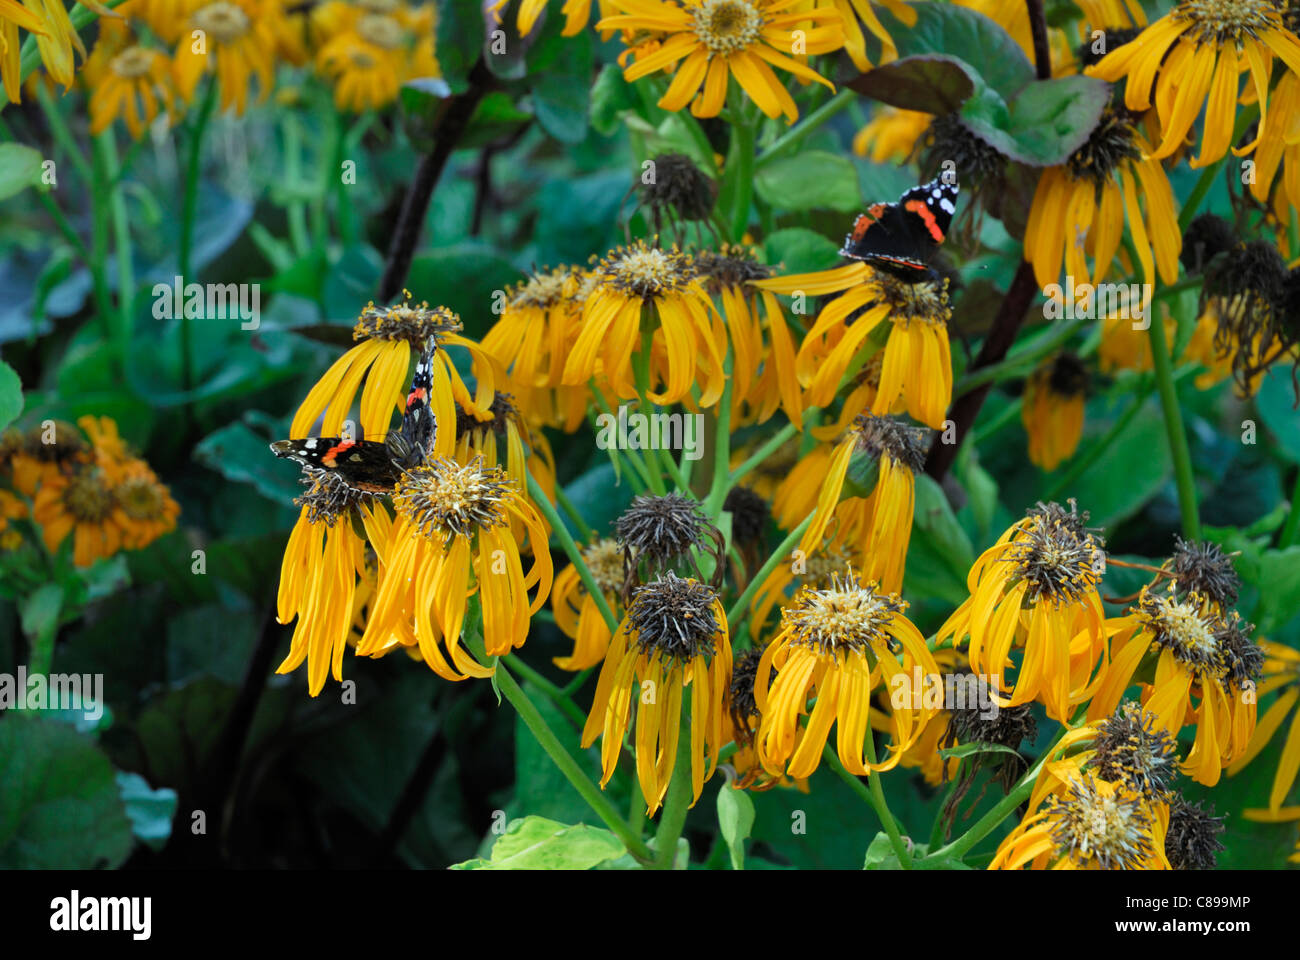 Views of the gardens flowers with Butterflies. - Stock Image